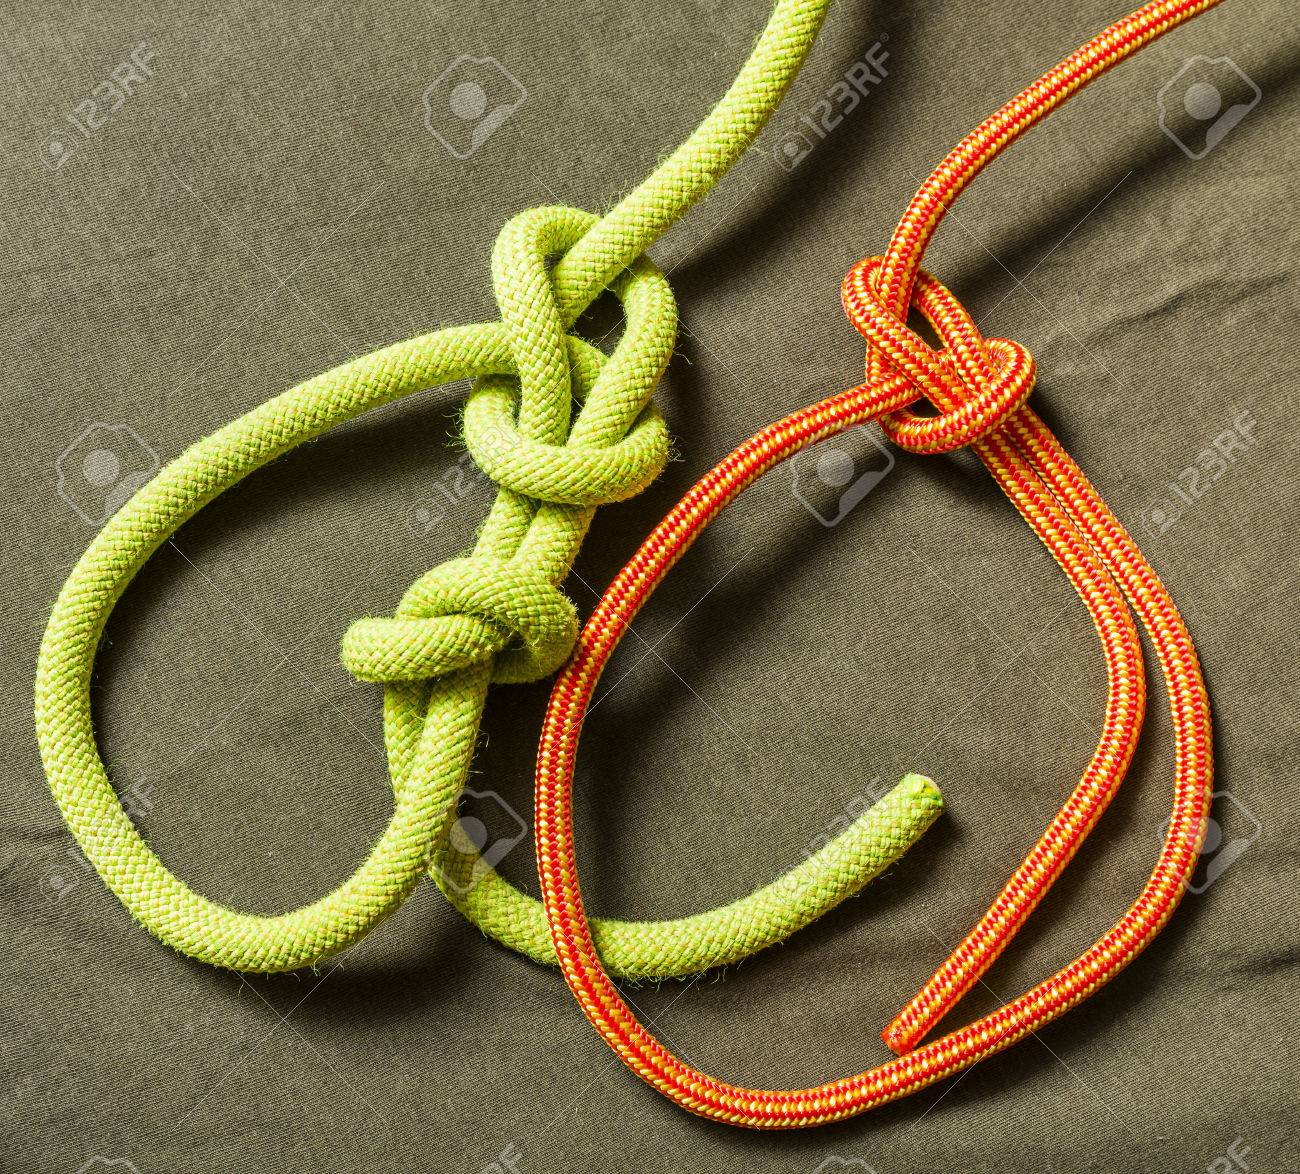 Bowline Knot With Security And Without Stock Photo Picture Water How To Tie A Boating Knots 67134487